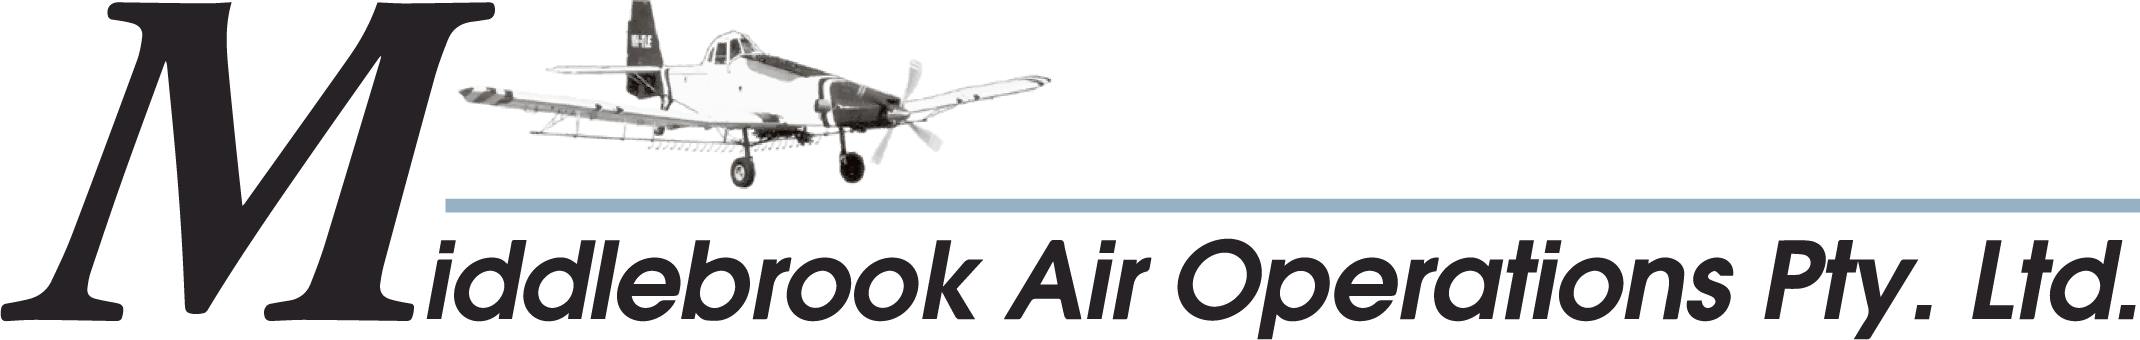 middlebrook air operations logo